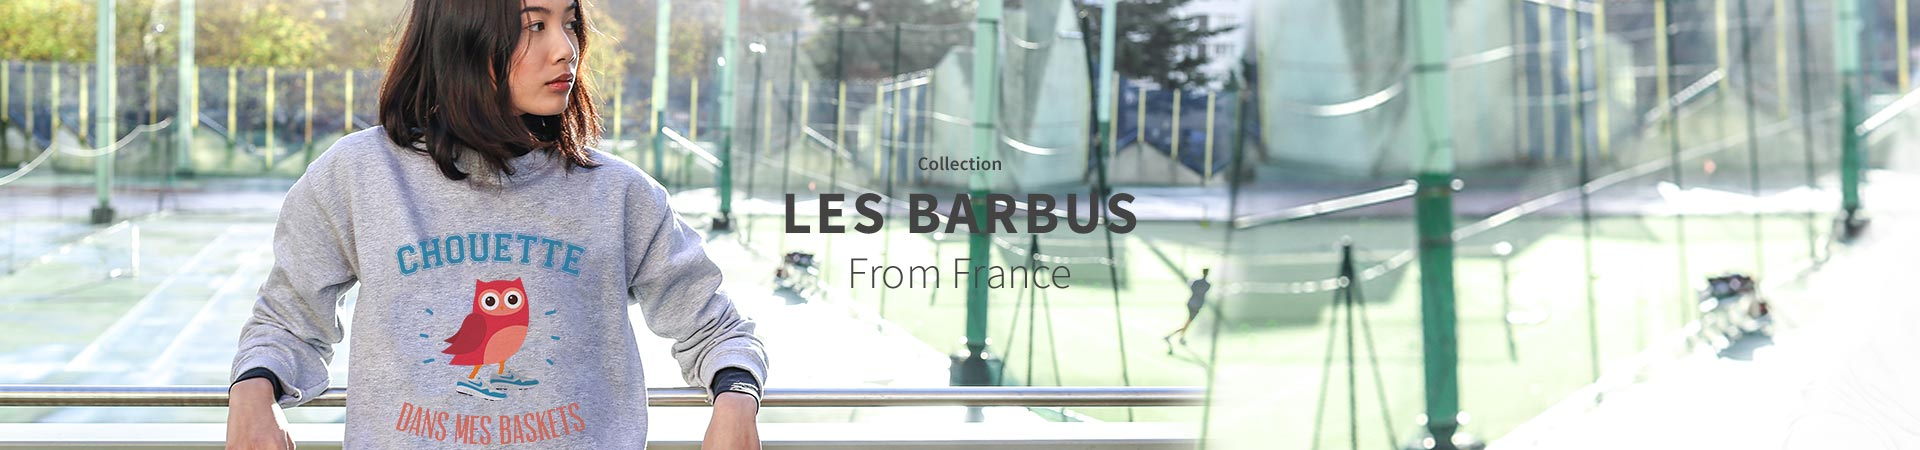 Collection Les Barbus